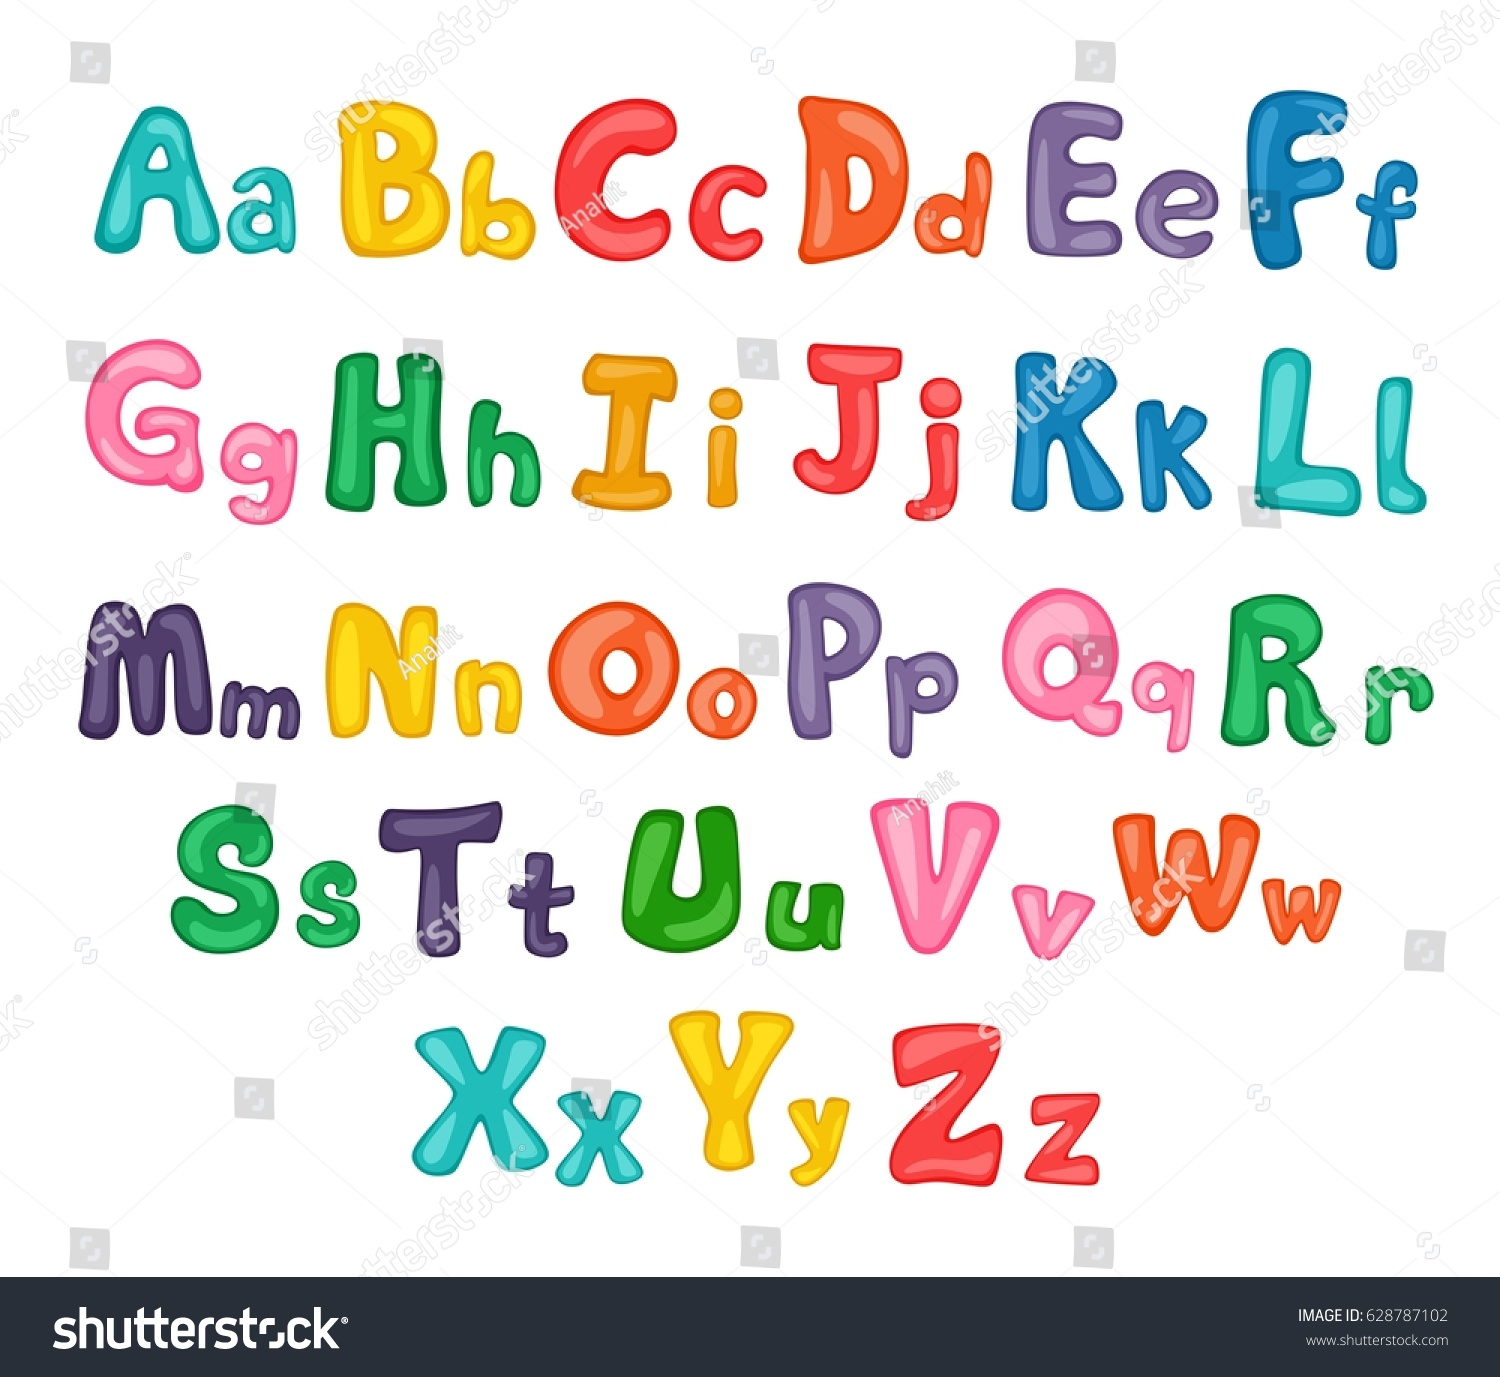 Cartoon Alphabet Illustrated Uppercase Lowercase Letters